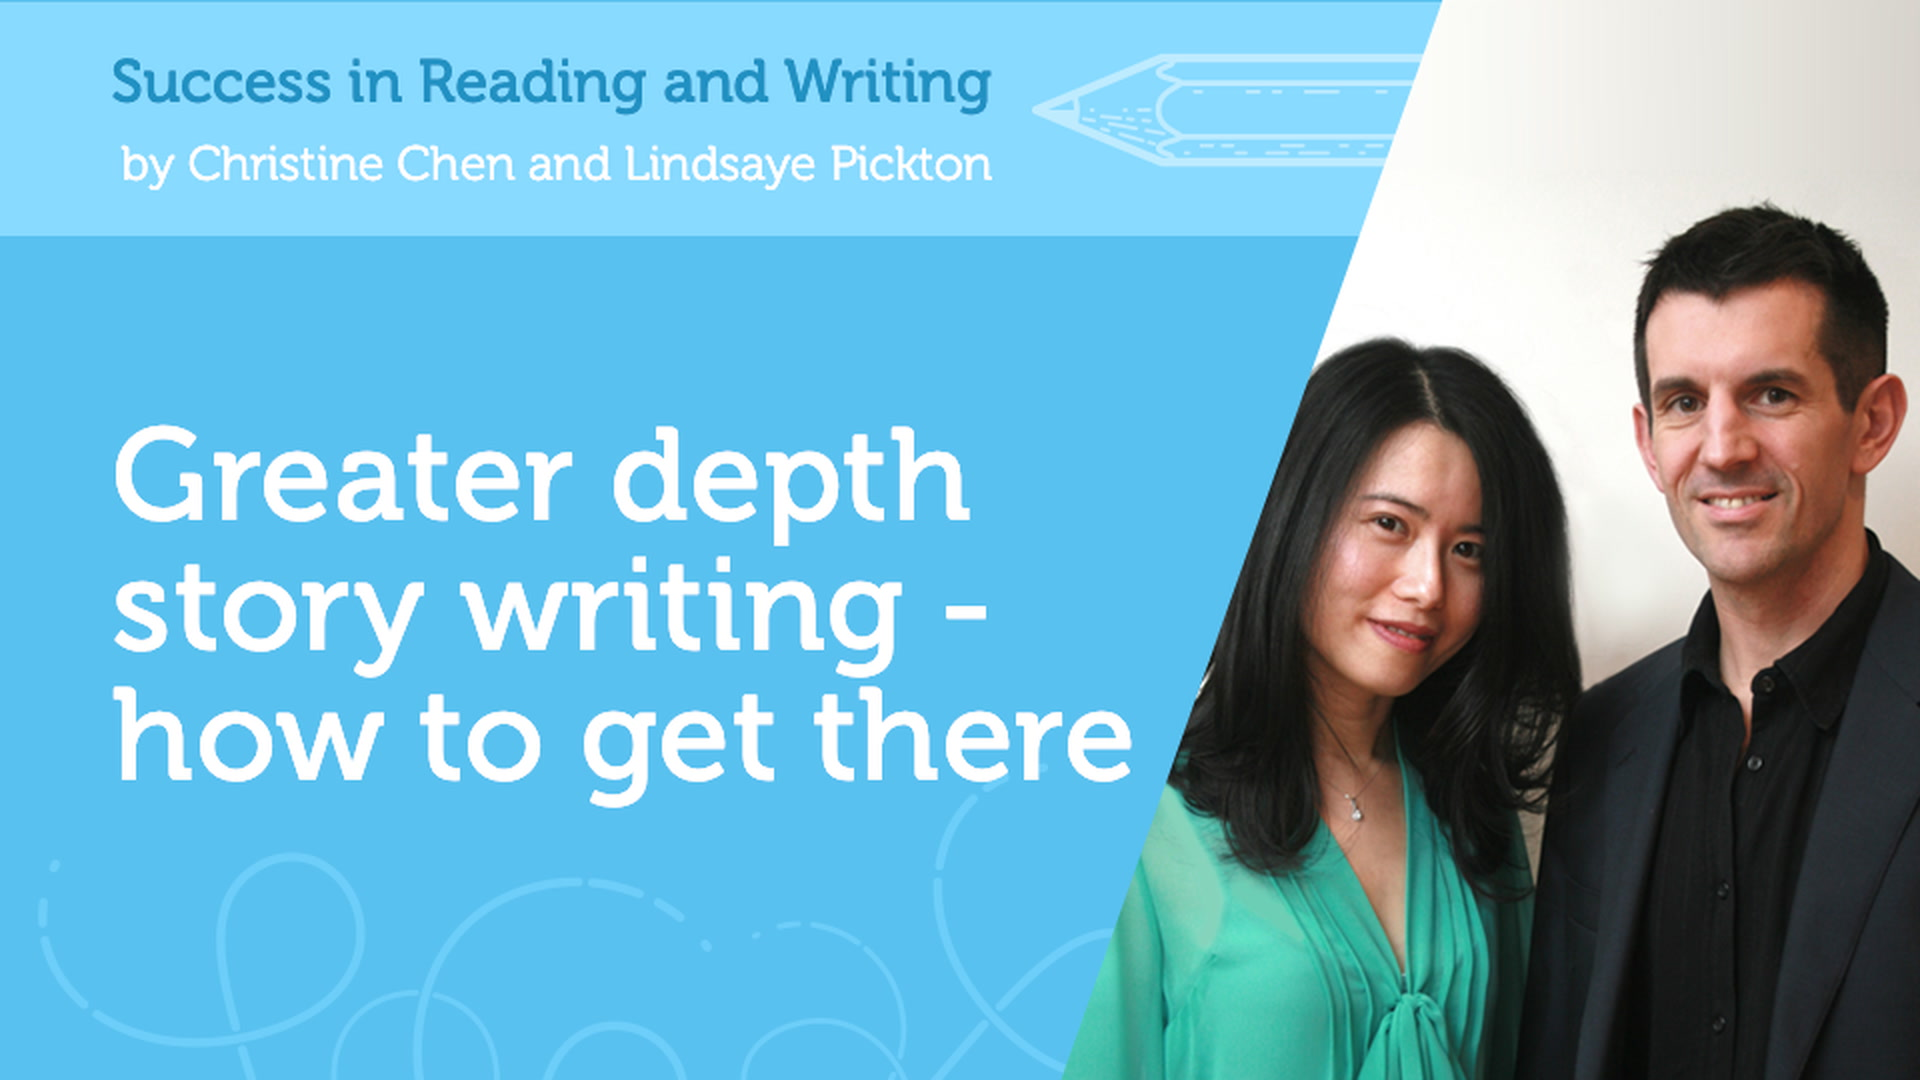 Greater depth story writing - how to get there